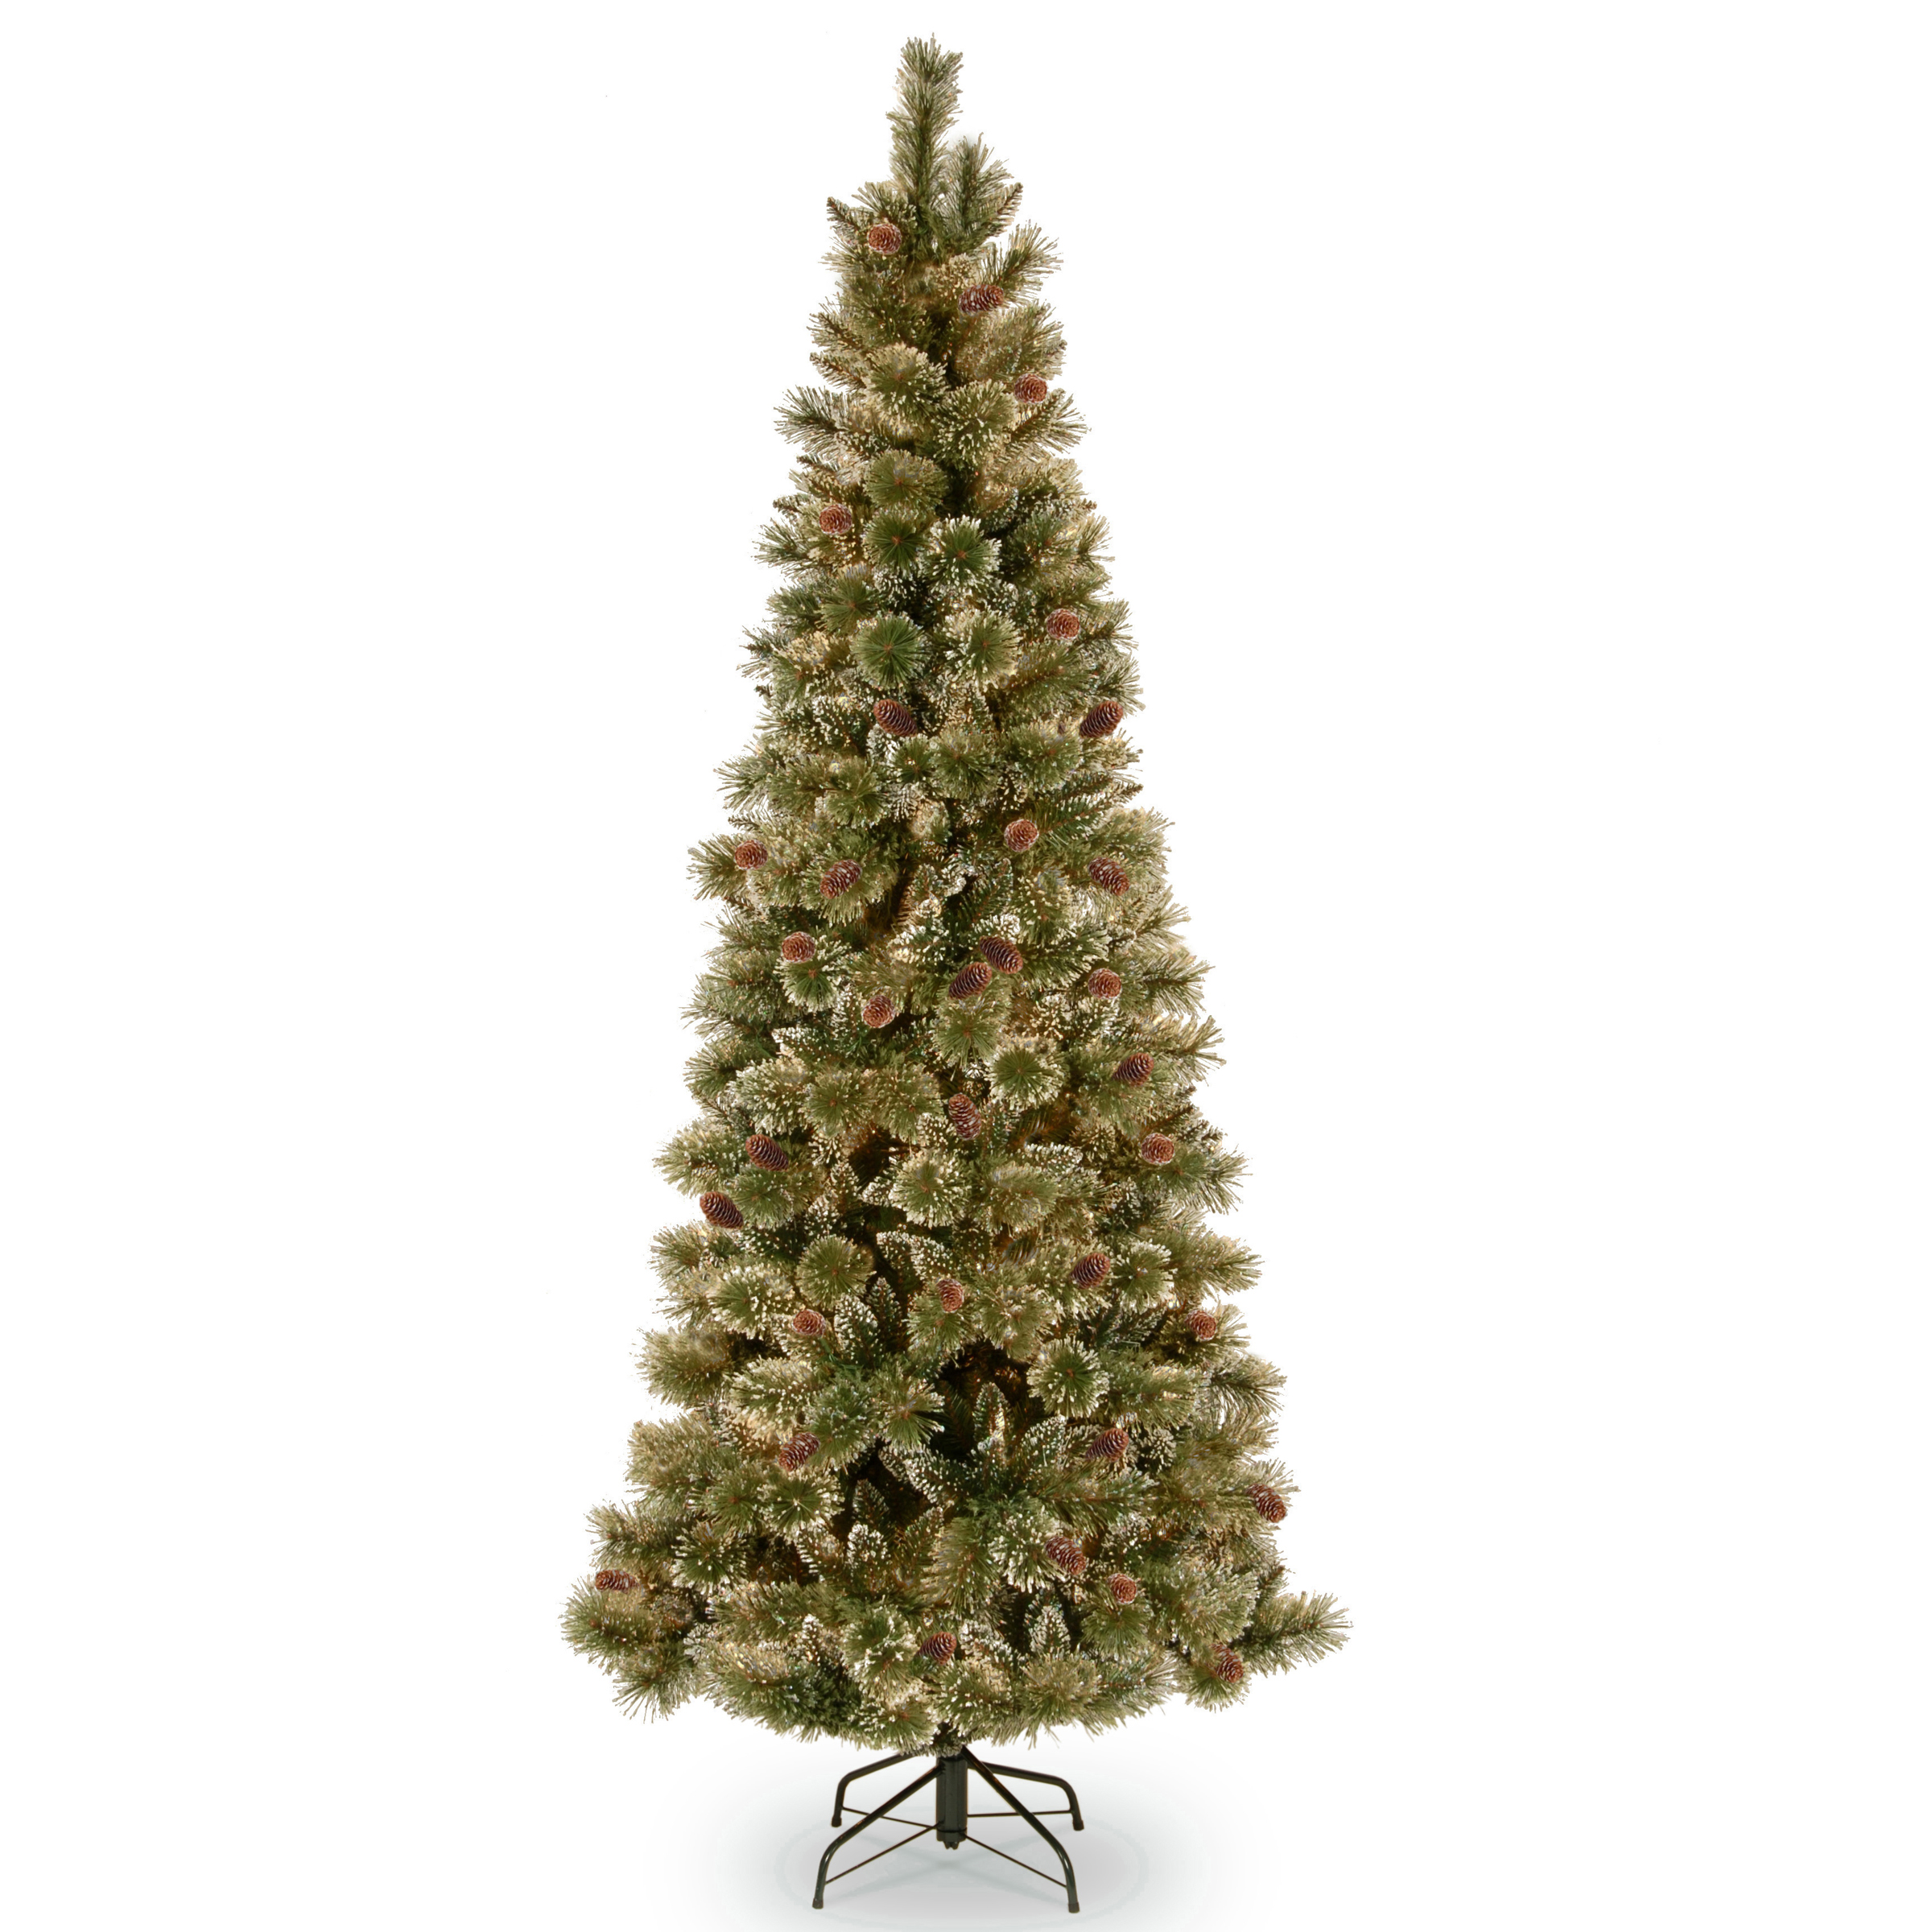 National Tree Company Glittery Bristle Pine 24 In Artificial Wreath With Warm White LED Lights